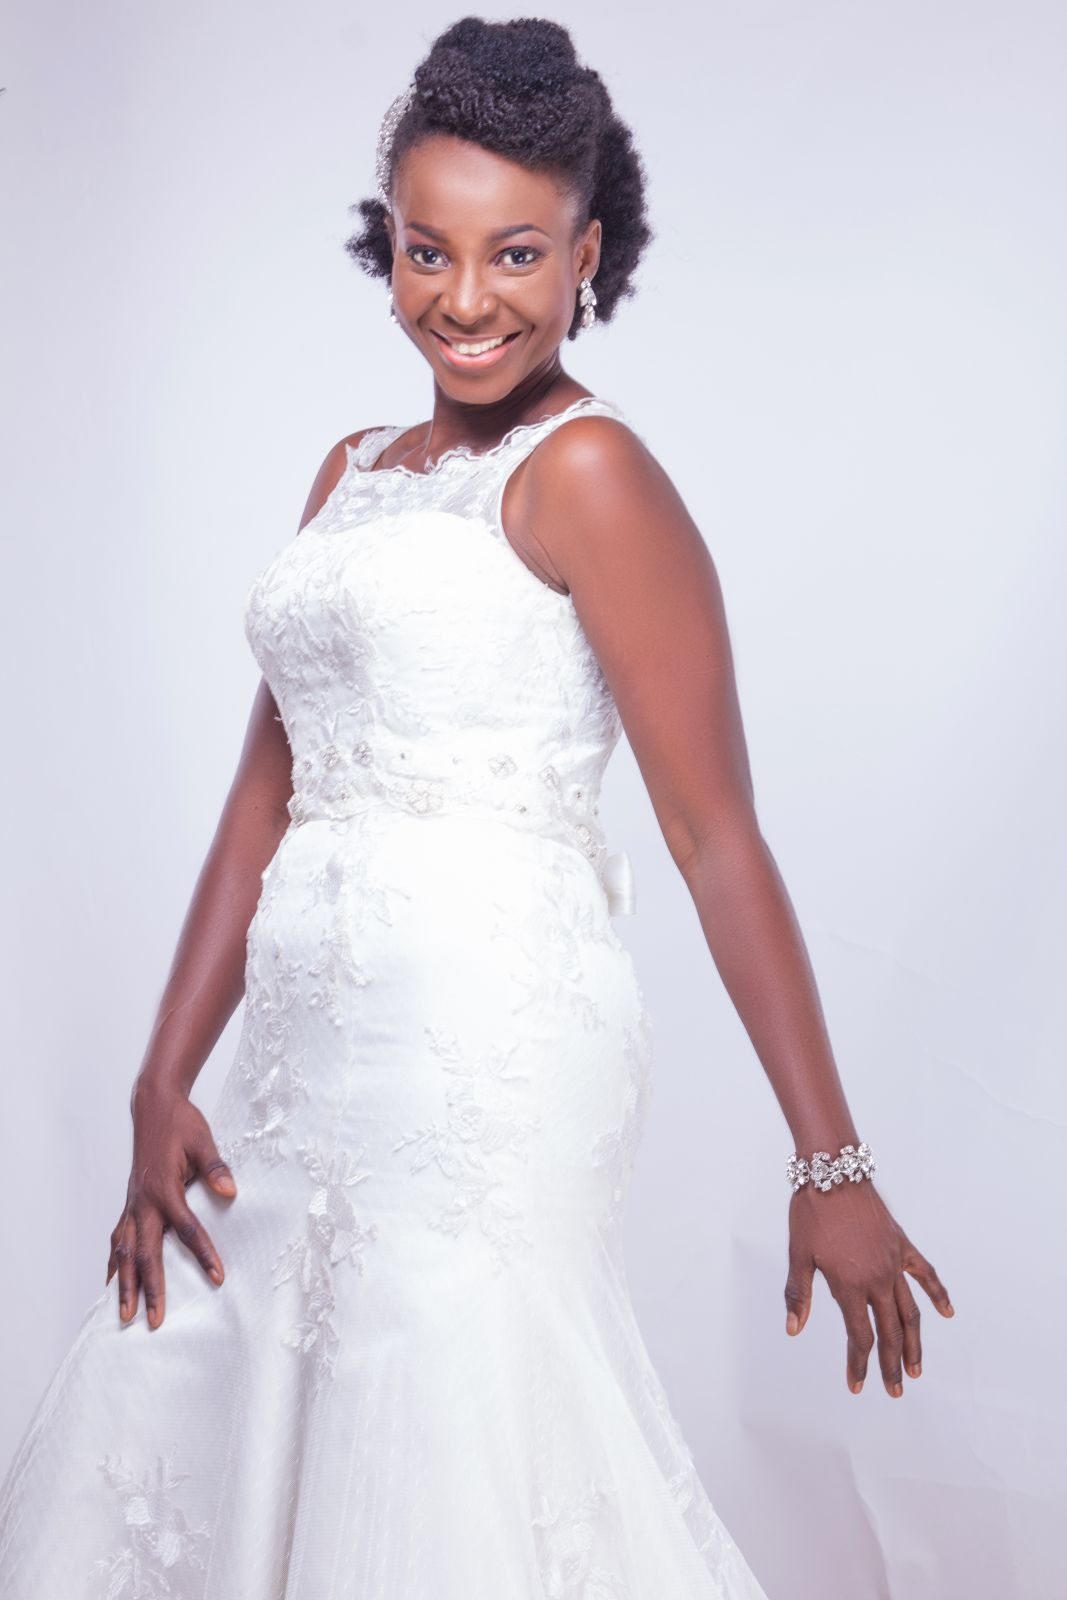 Natural Hair Bridal Inspiration - Yes I Do - BellaNaija Weddings 2015 007